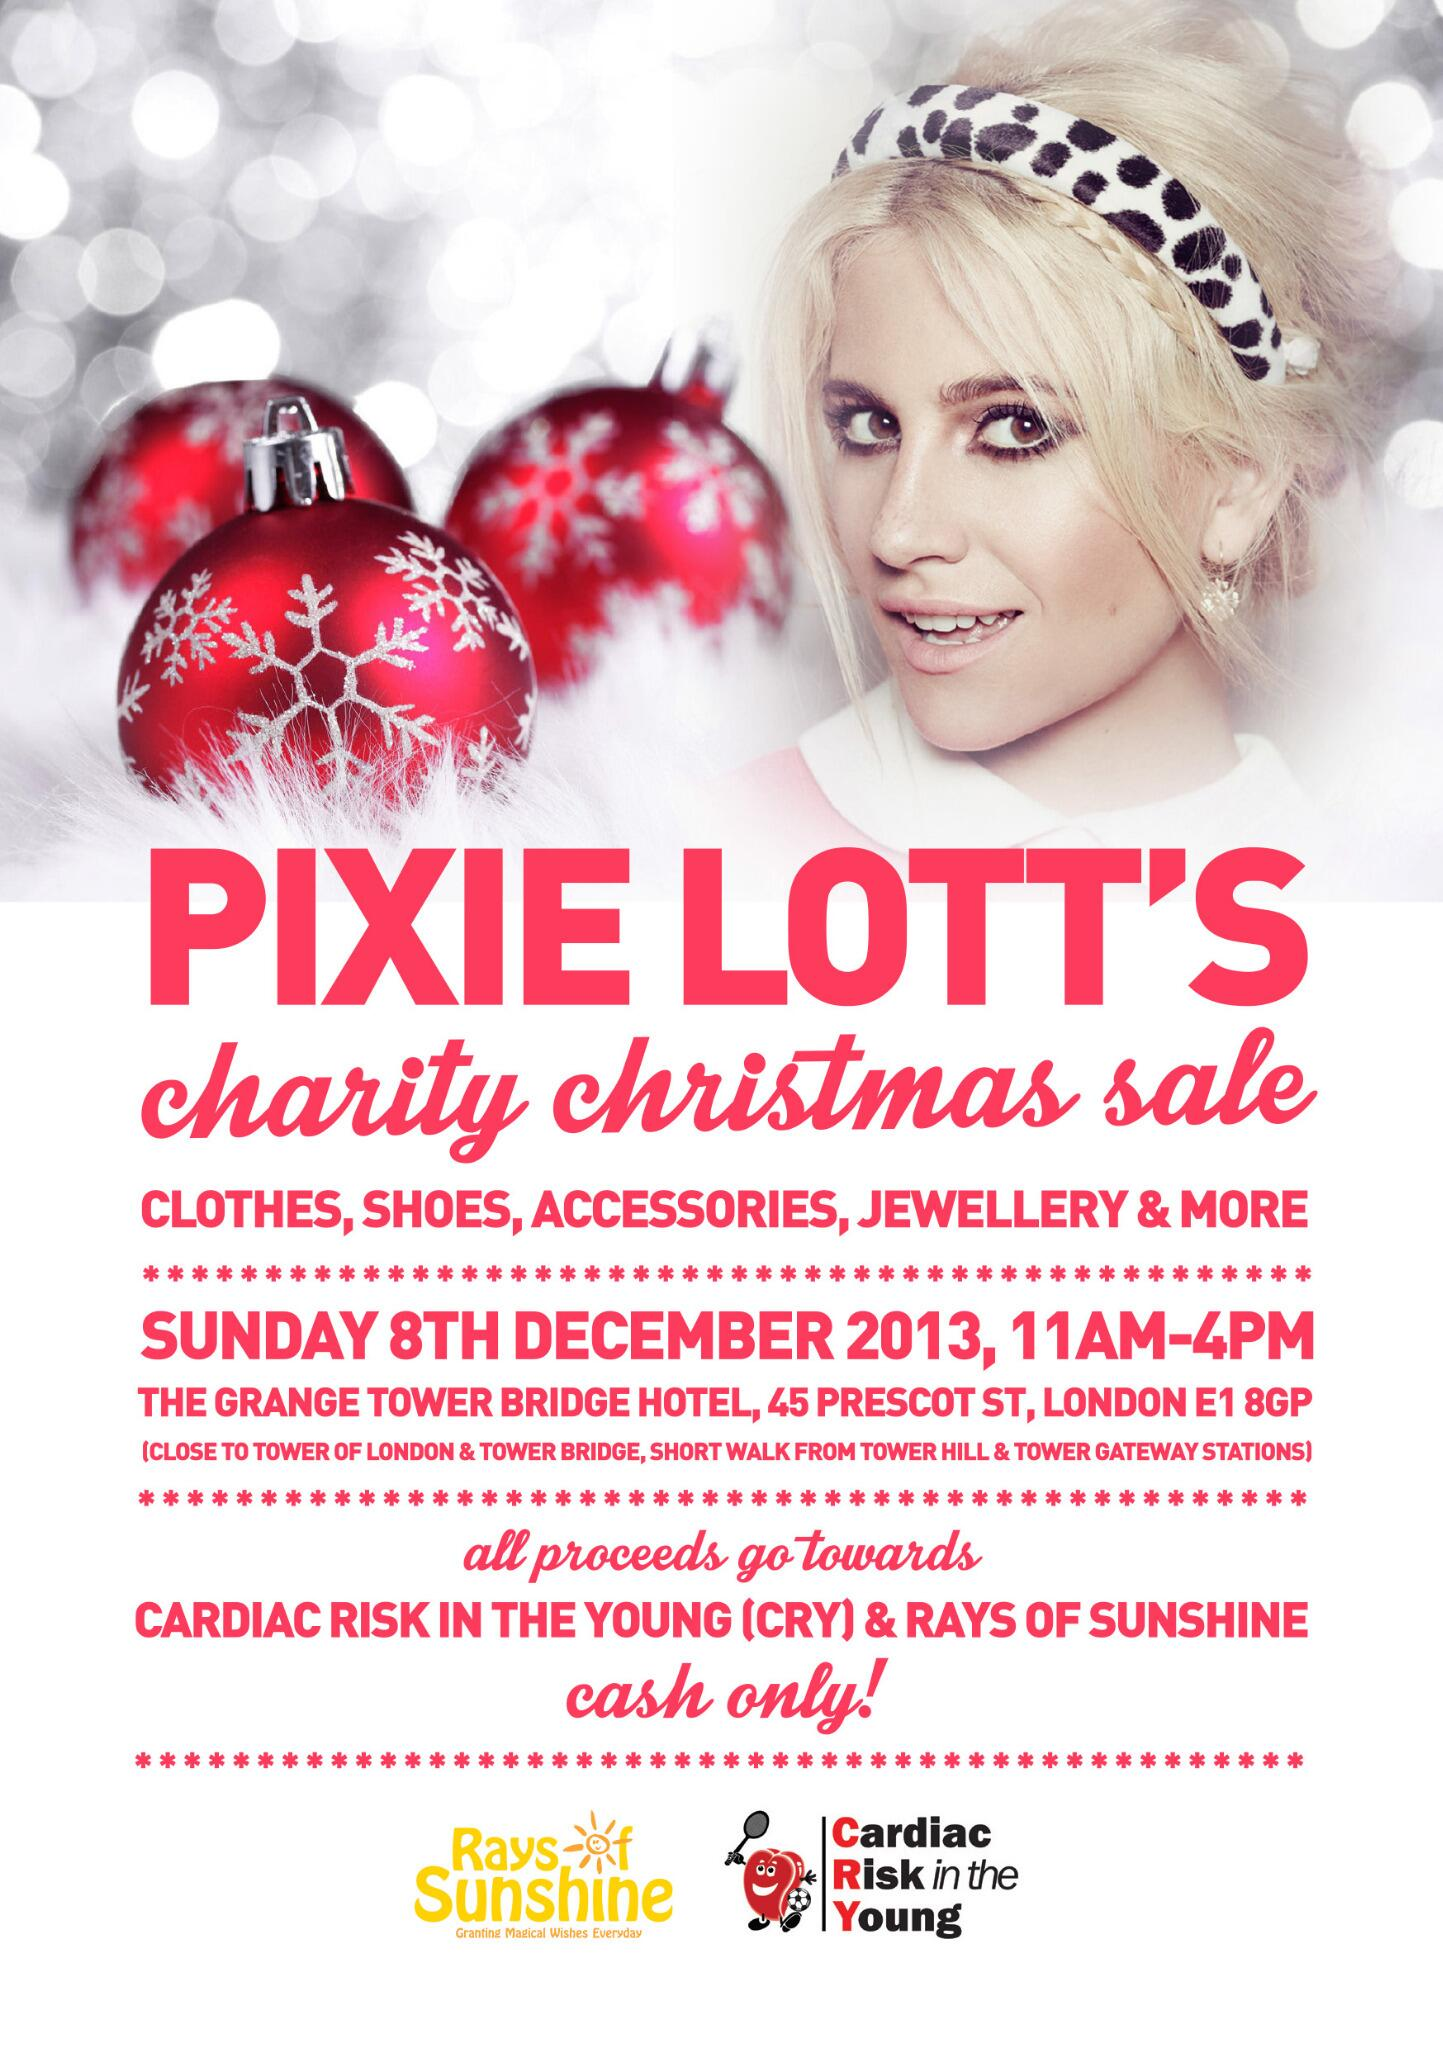 Excited to see u all on Sun, excited to be hosting a charity sale @RaysofSunshine & @CRY_UK Hope to see u there!! XX http://t.co/EY6XYEVNr0